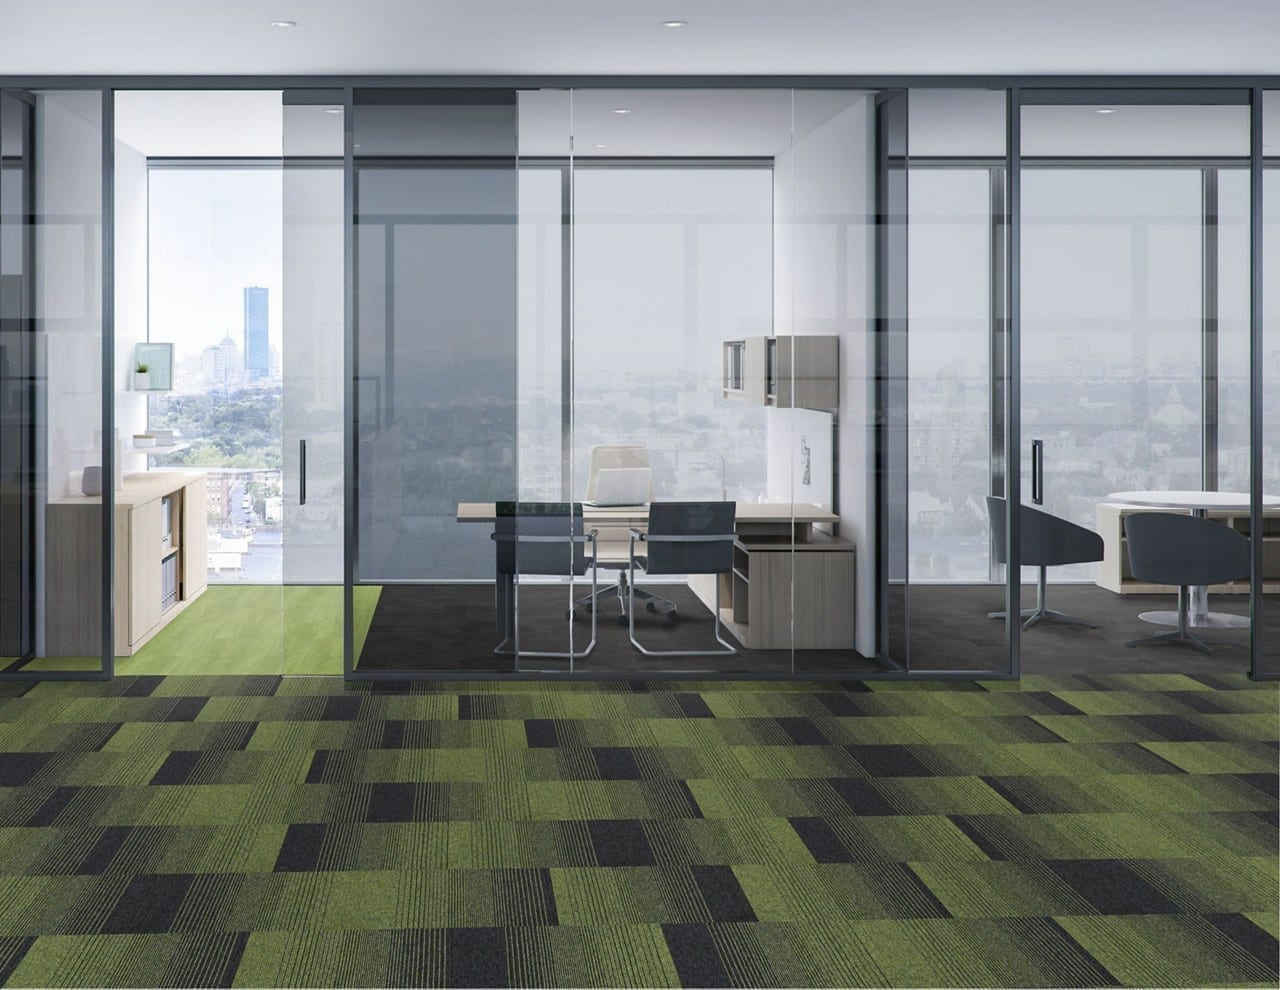 INCREASING DEMAND FOR INTERFACE CARPET TILE RANGES